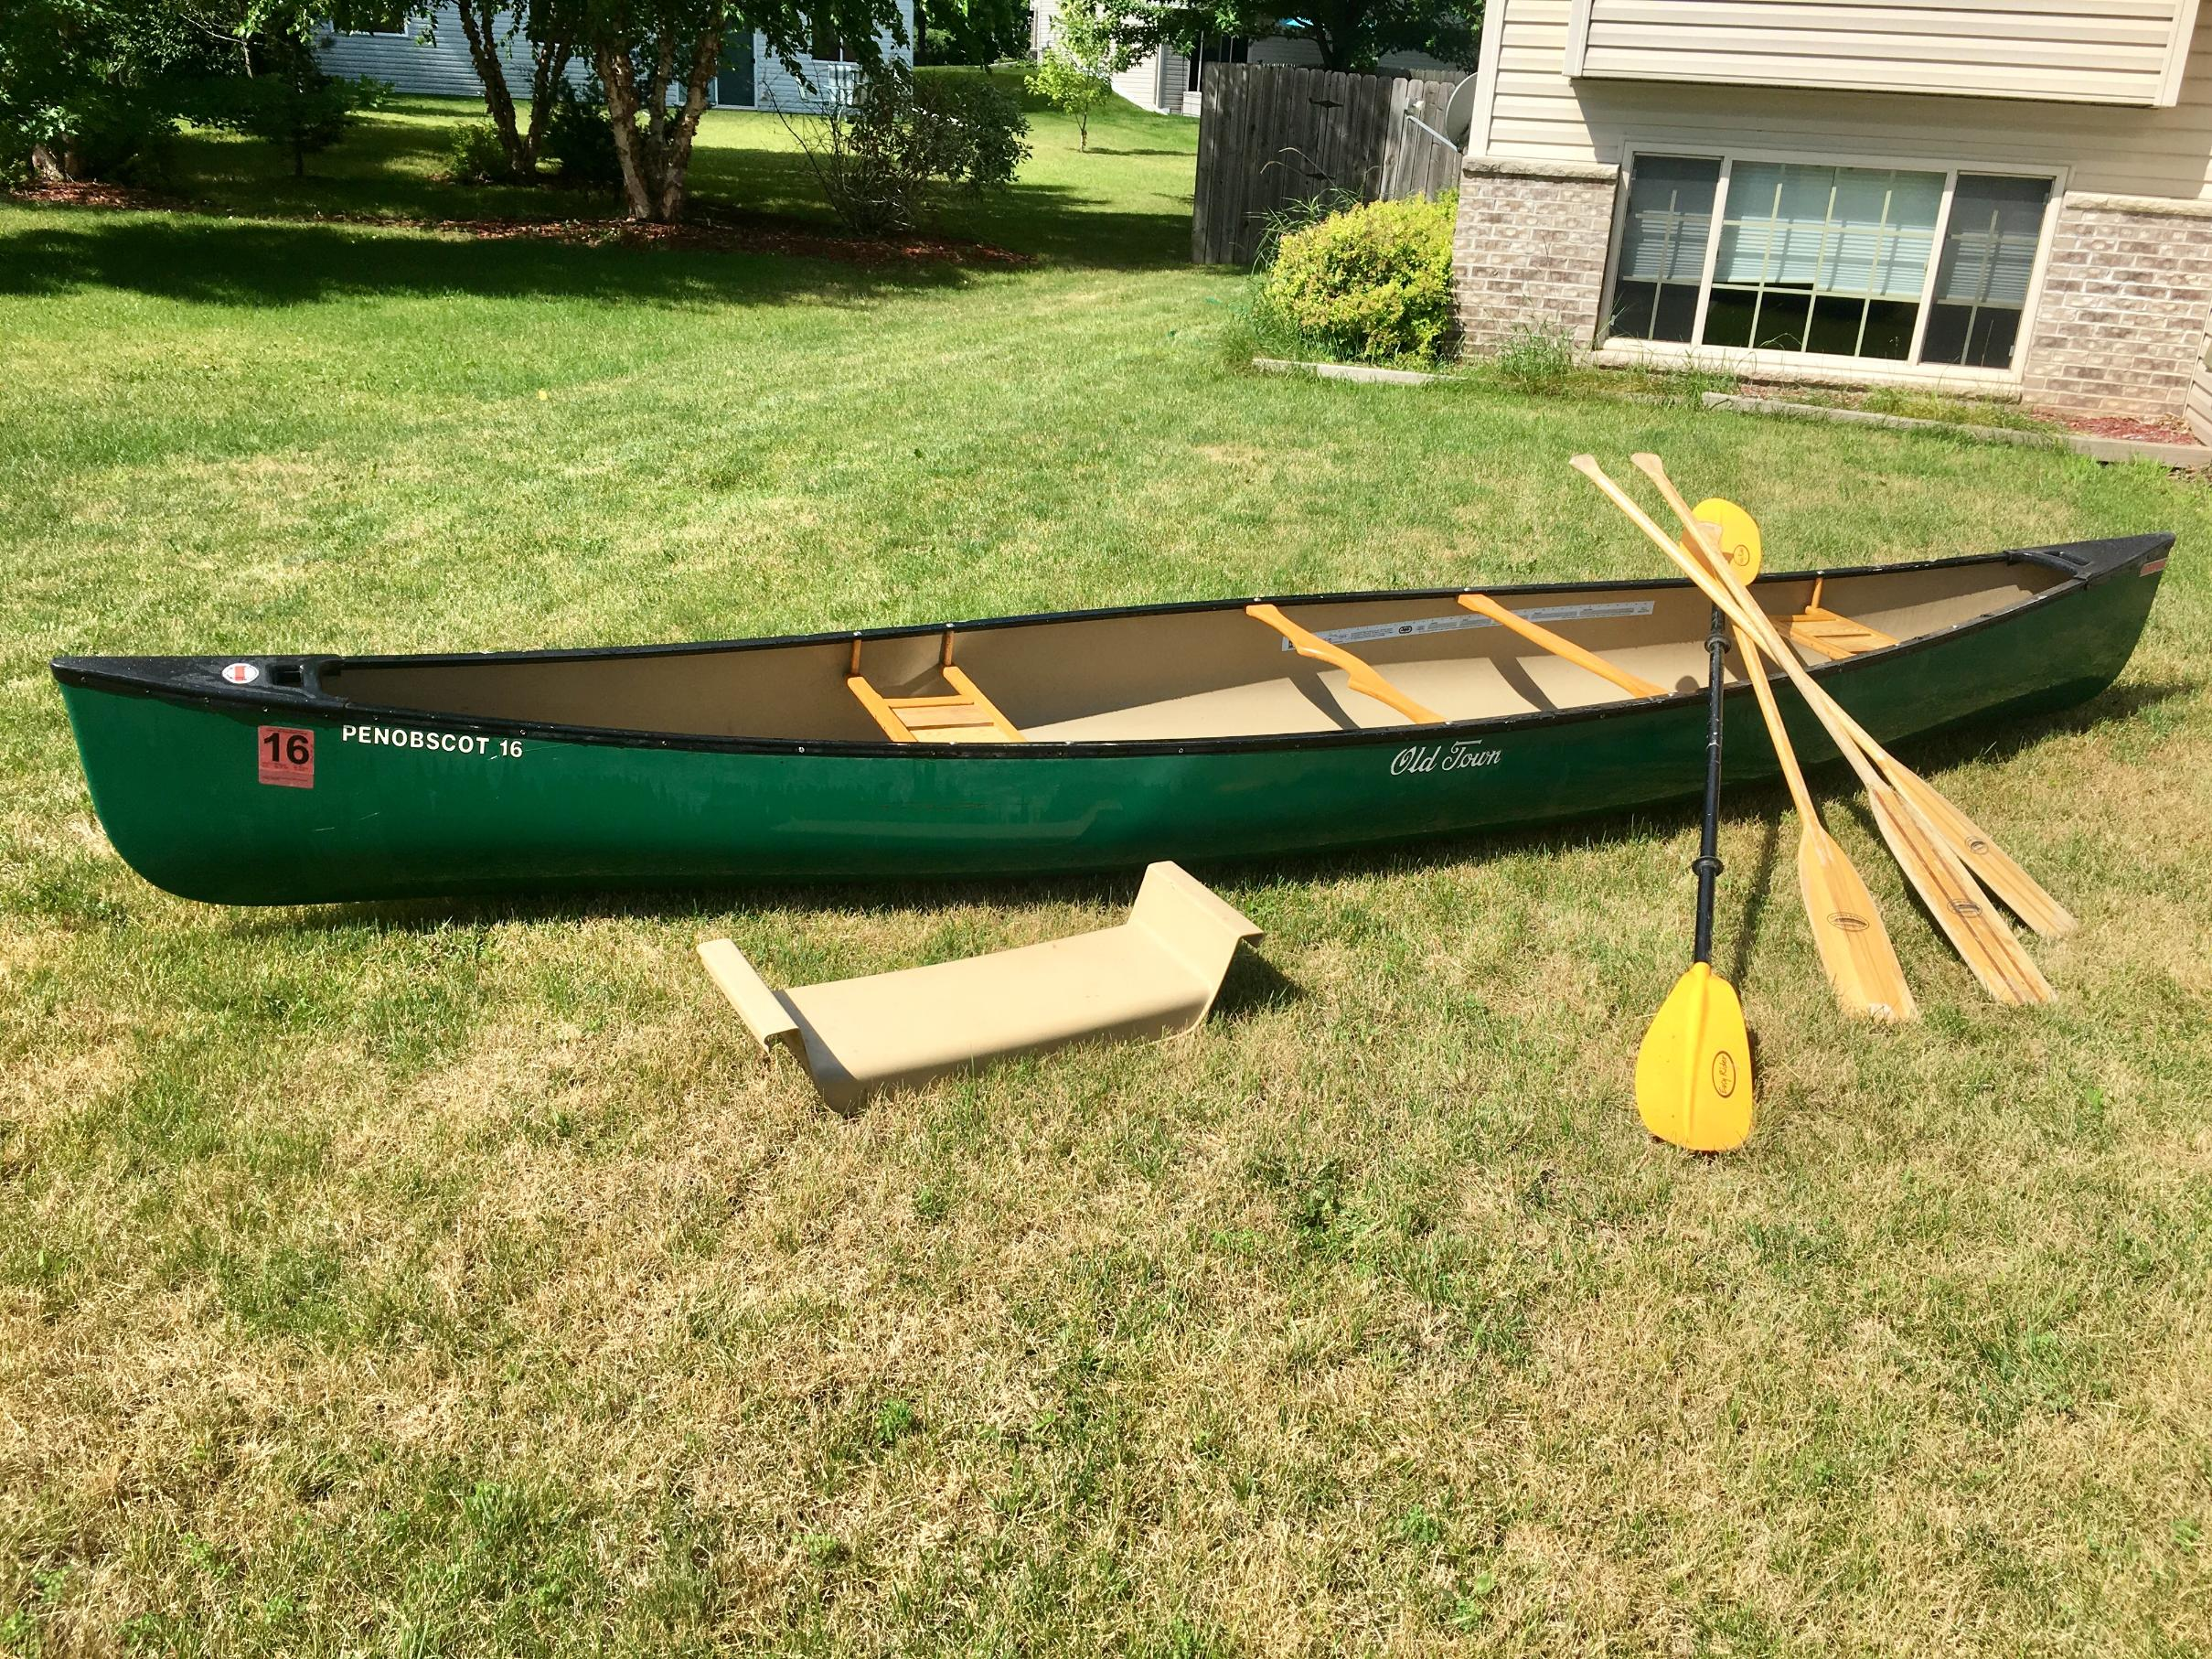 BWCA SOLD:Old Town Penobscot Royalex Tandem/Solo Canoe